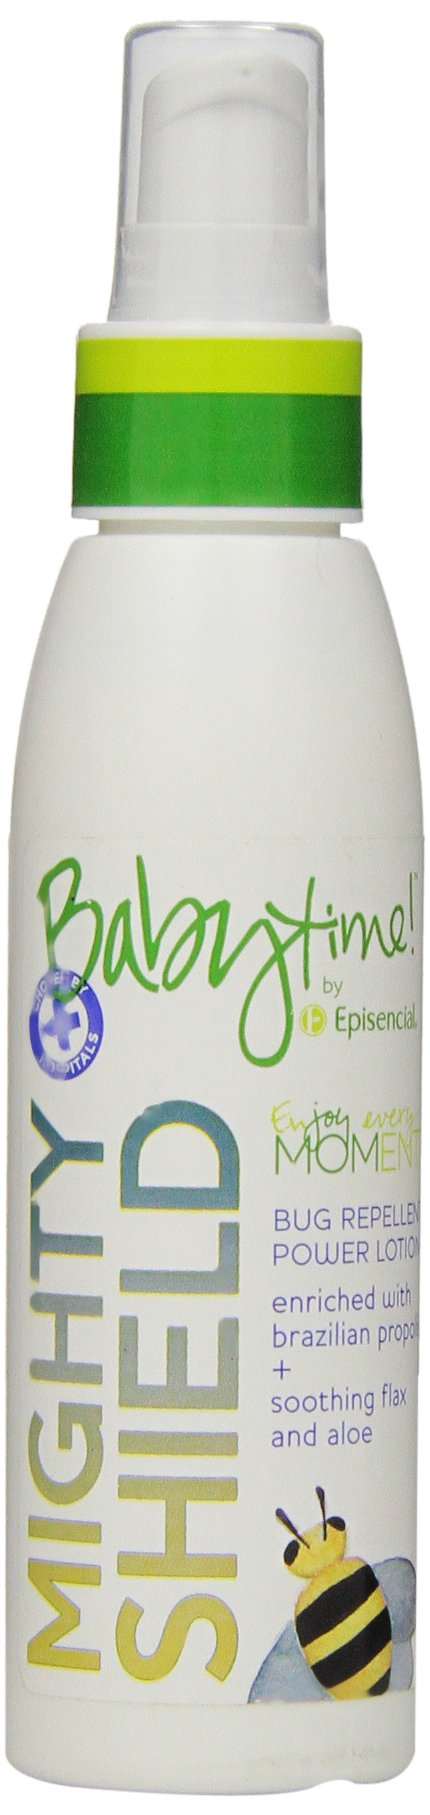 Babytime by Episencial Mighty Shield Bug Repellent DEET-Free Lotion, 3.4 Ounce